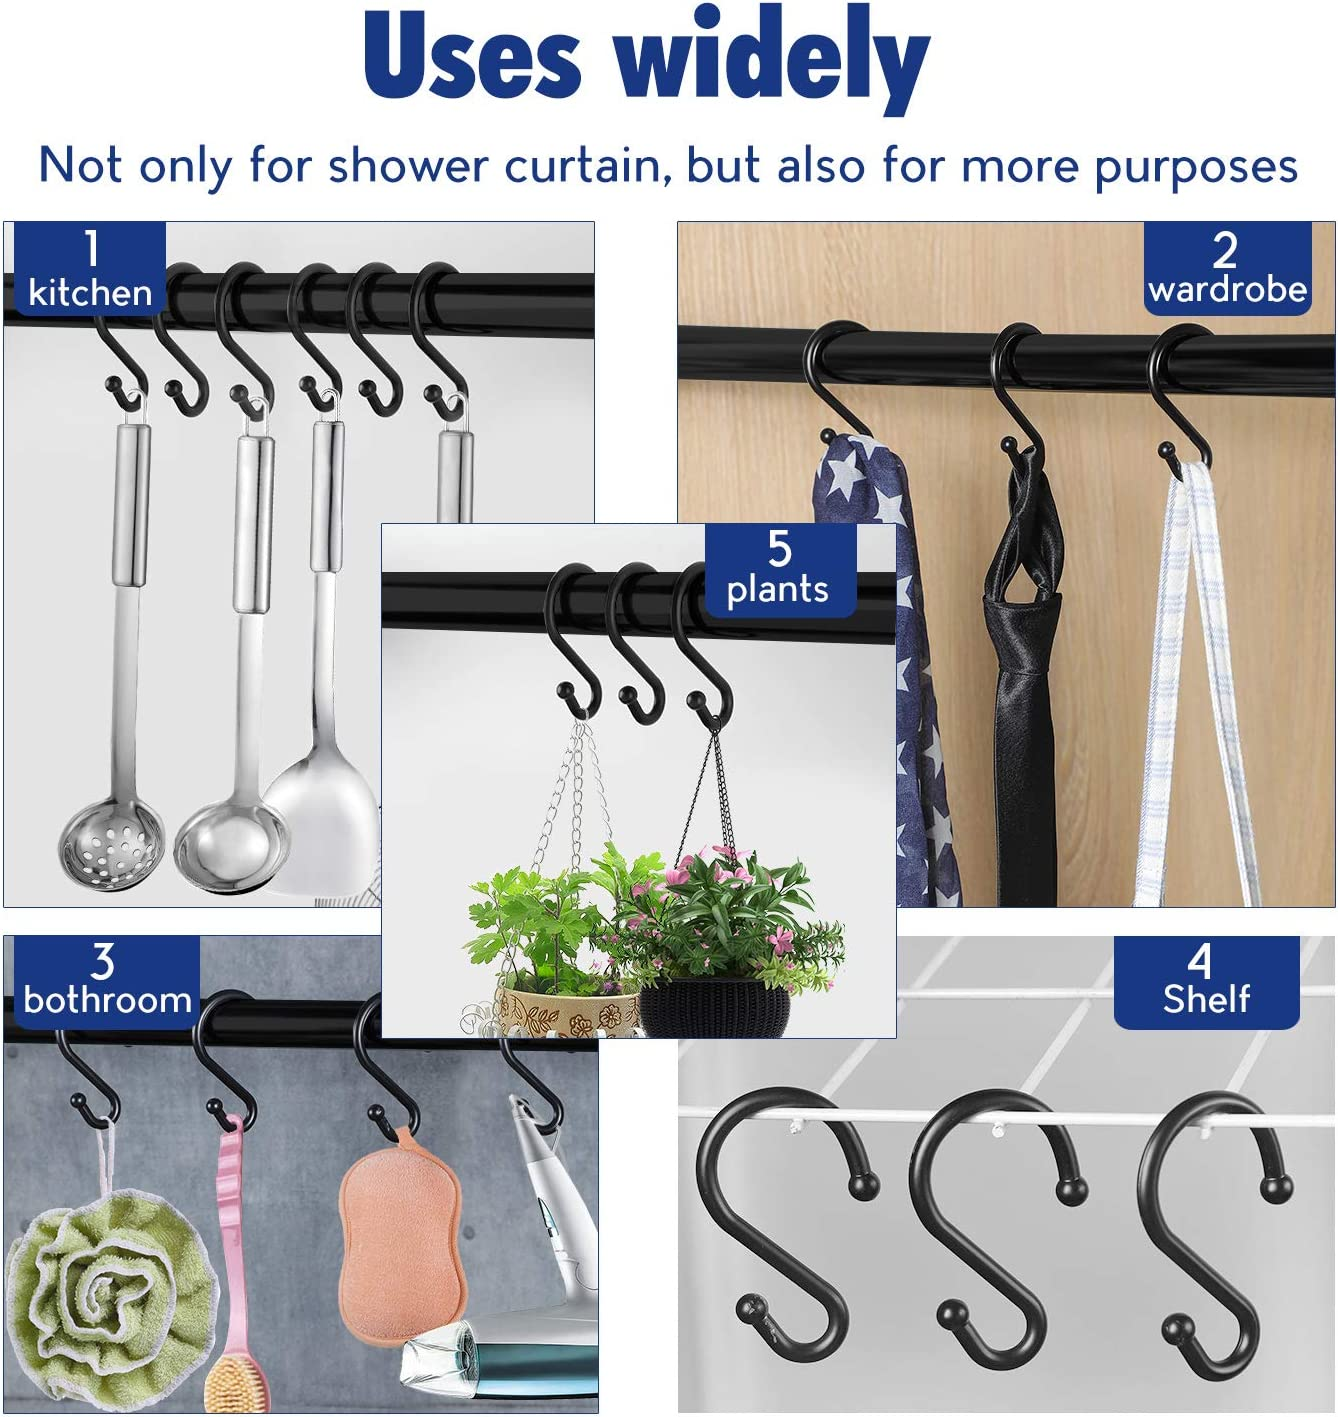 Metal Shower Curtain Hooks,Set of 12 Rings,Rust Resistant S Shaped Hooks Hangers for Shower Curtains, Kitchen Utensils, Clothing, Towels, etc. (Black): Home & Kitchen